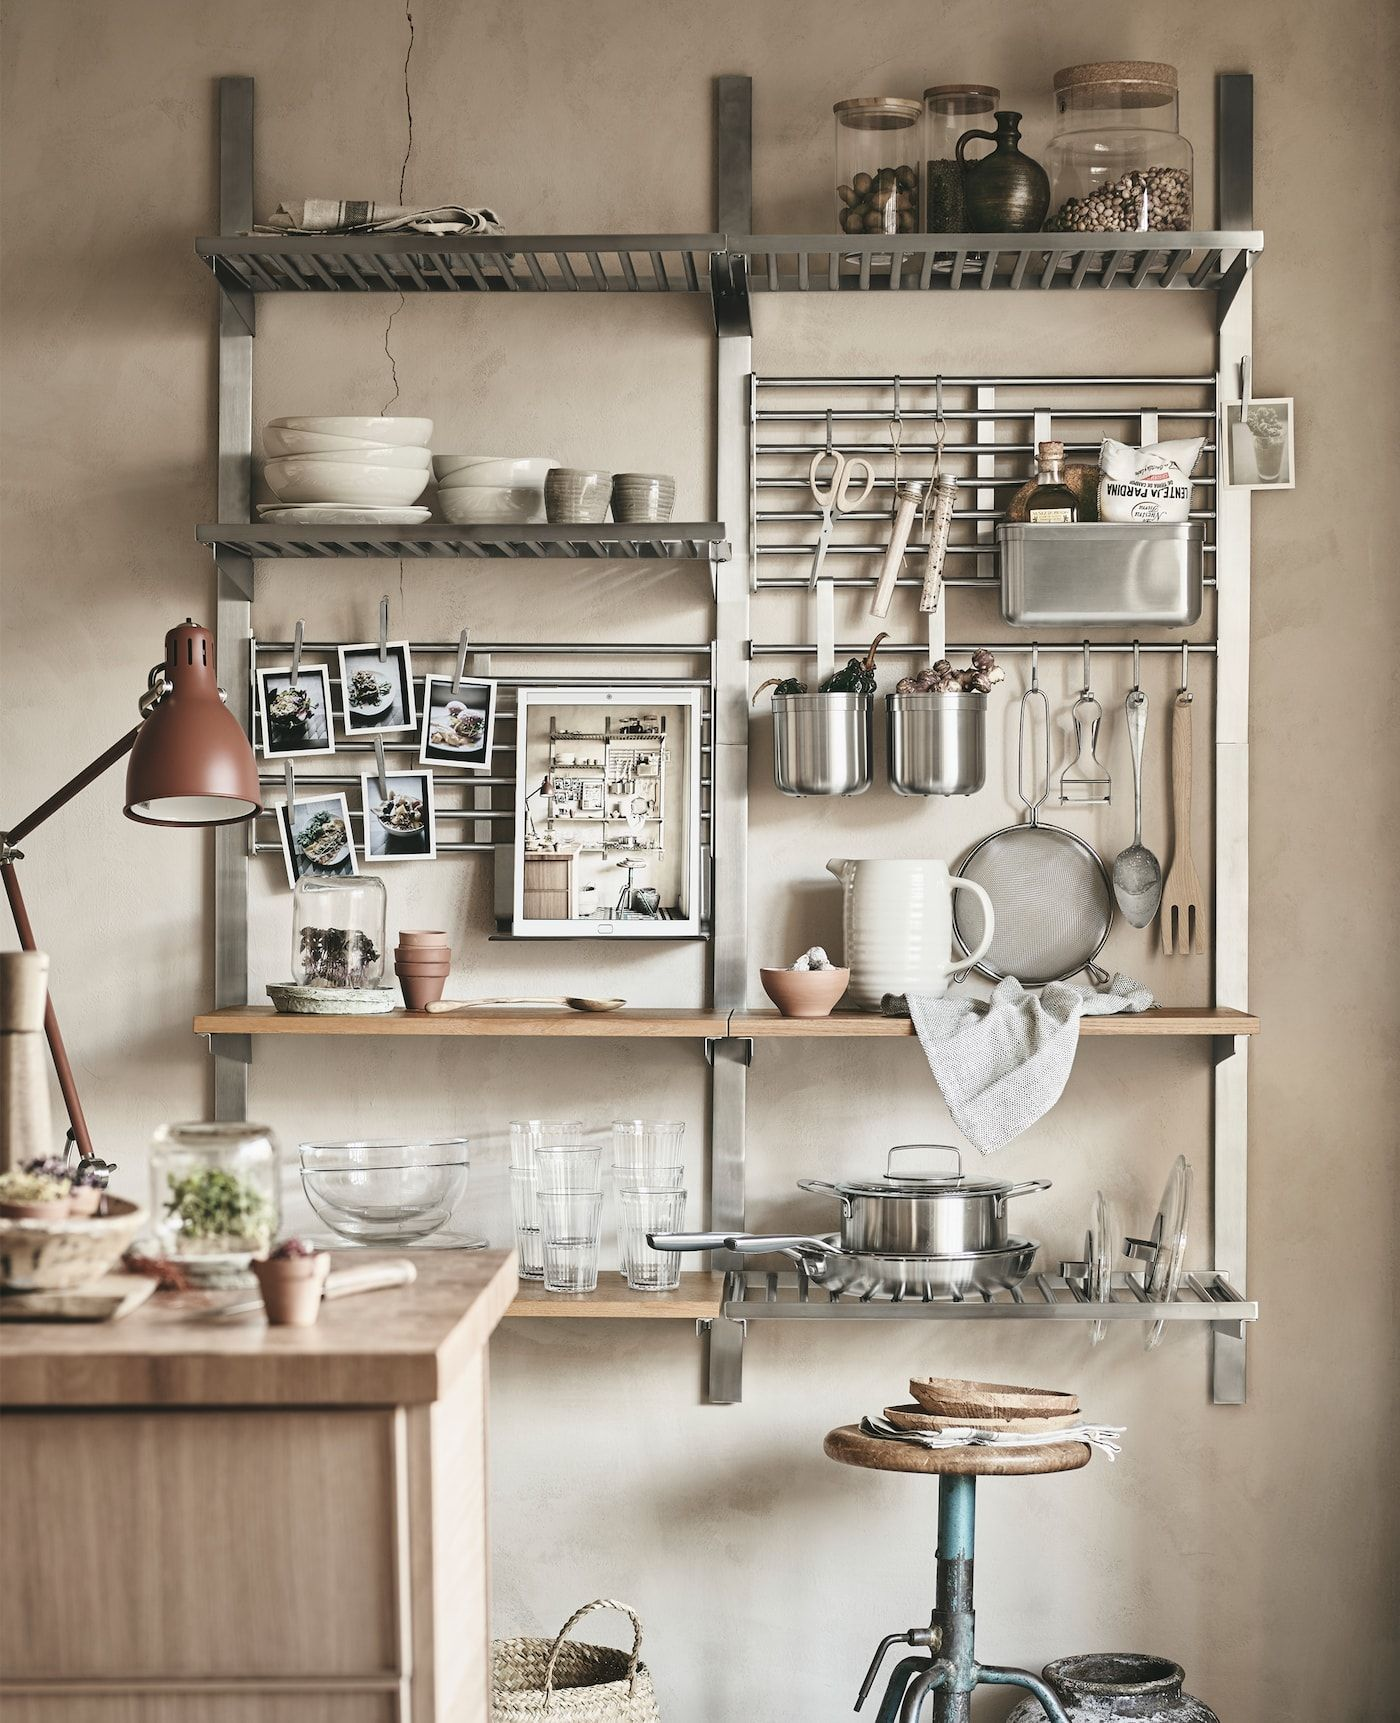 Kitchenware On A Wall Storage Unit Of Shelves, Rails And